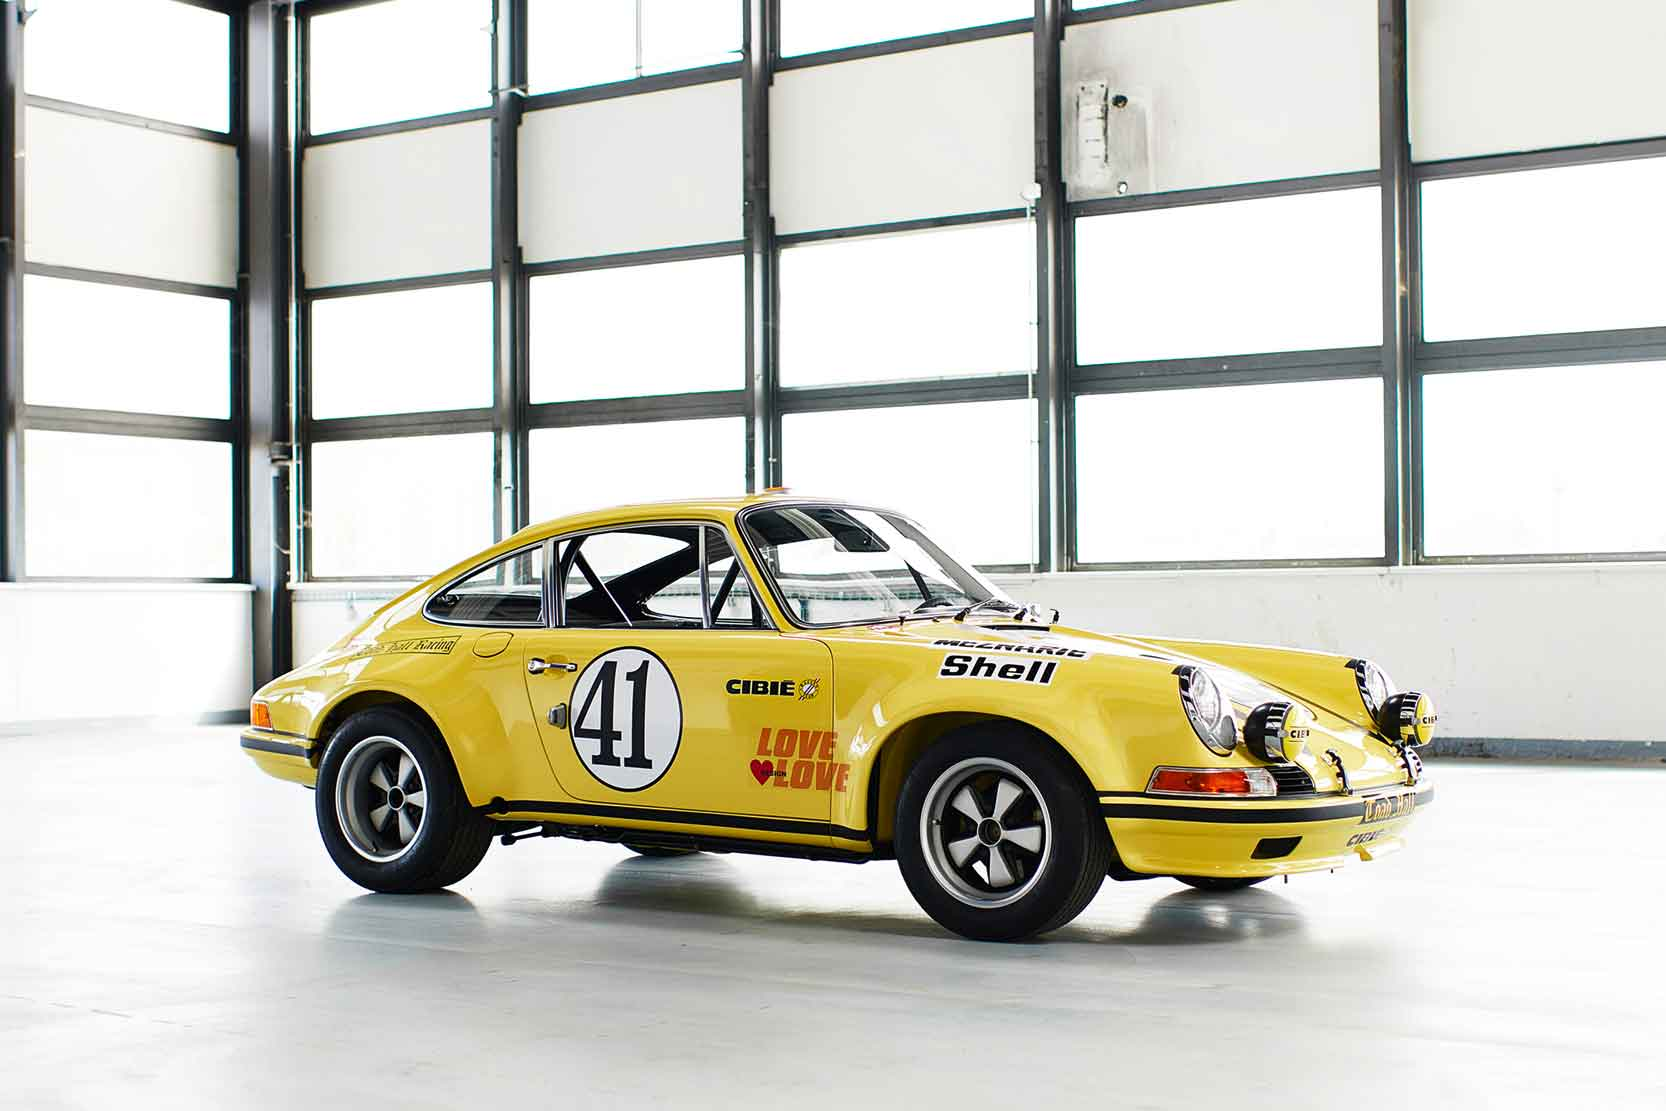 Exterieur_Porsche-911-2-5-ST-Take-Two_5